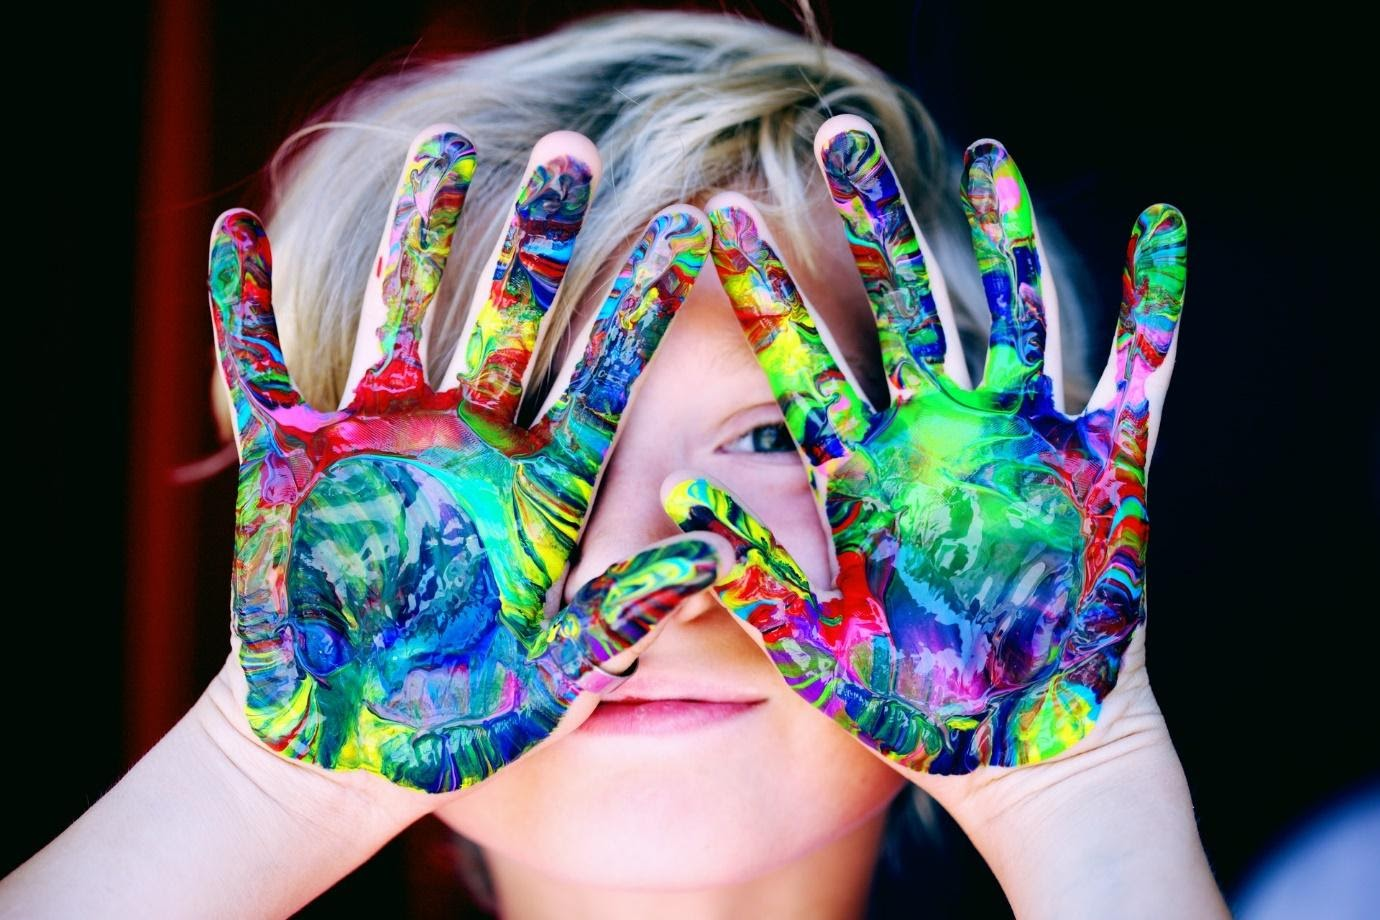 Paint: Encourage Your Child To Paint With Paint By Numbers